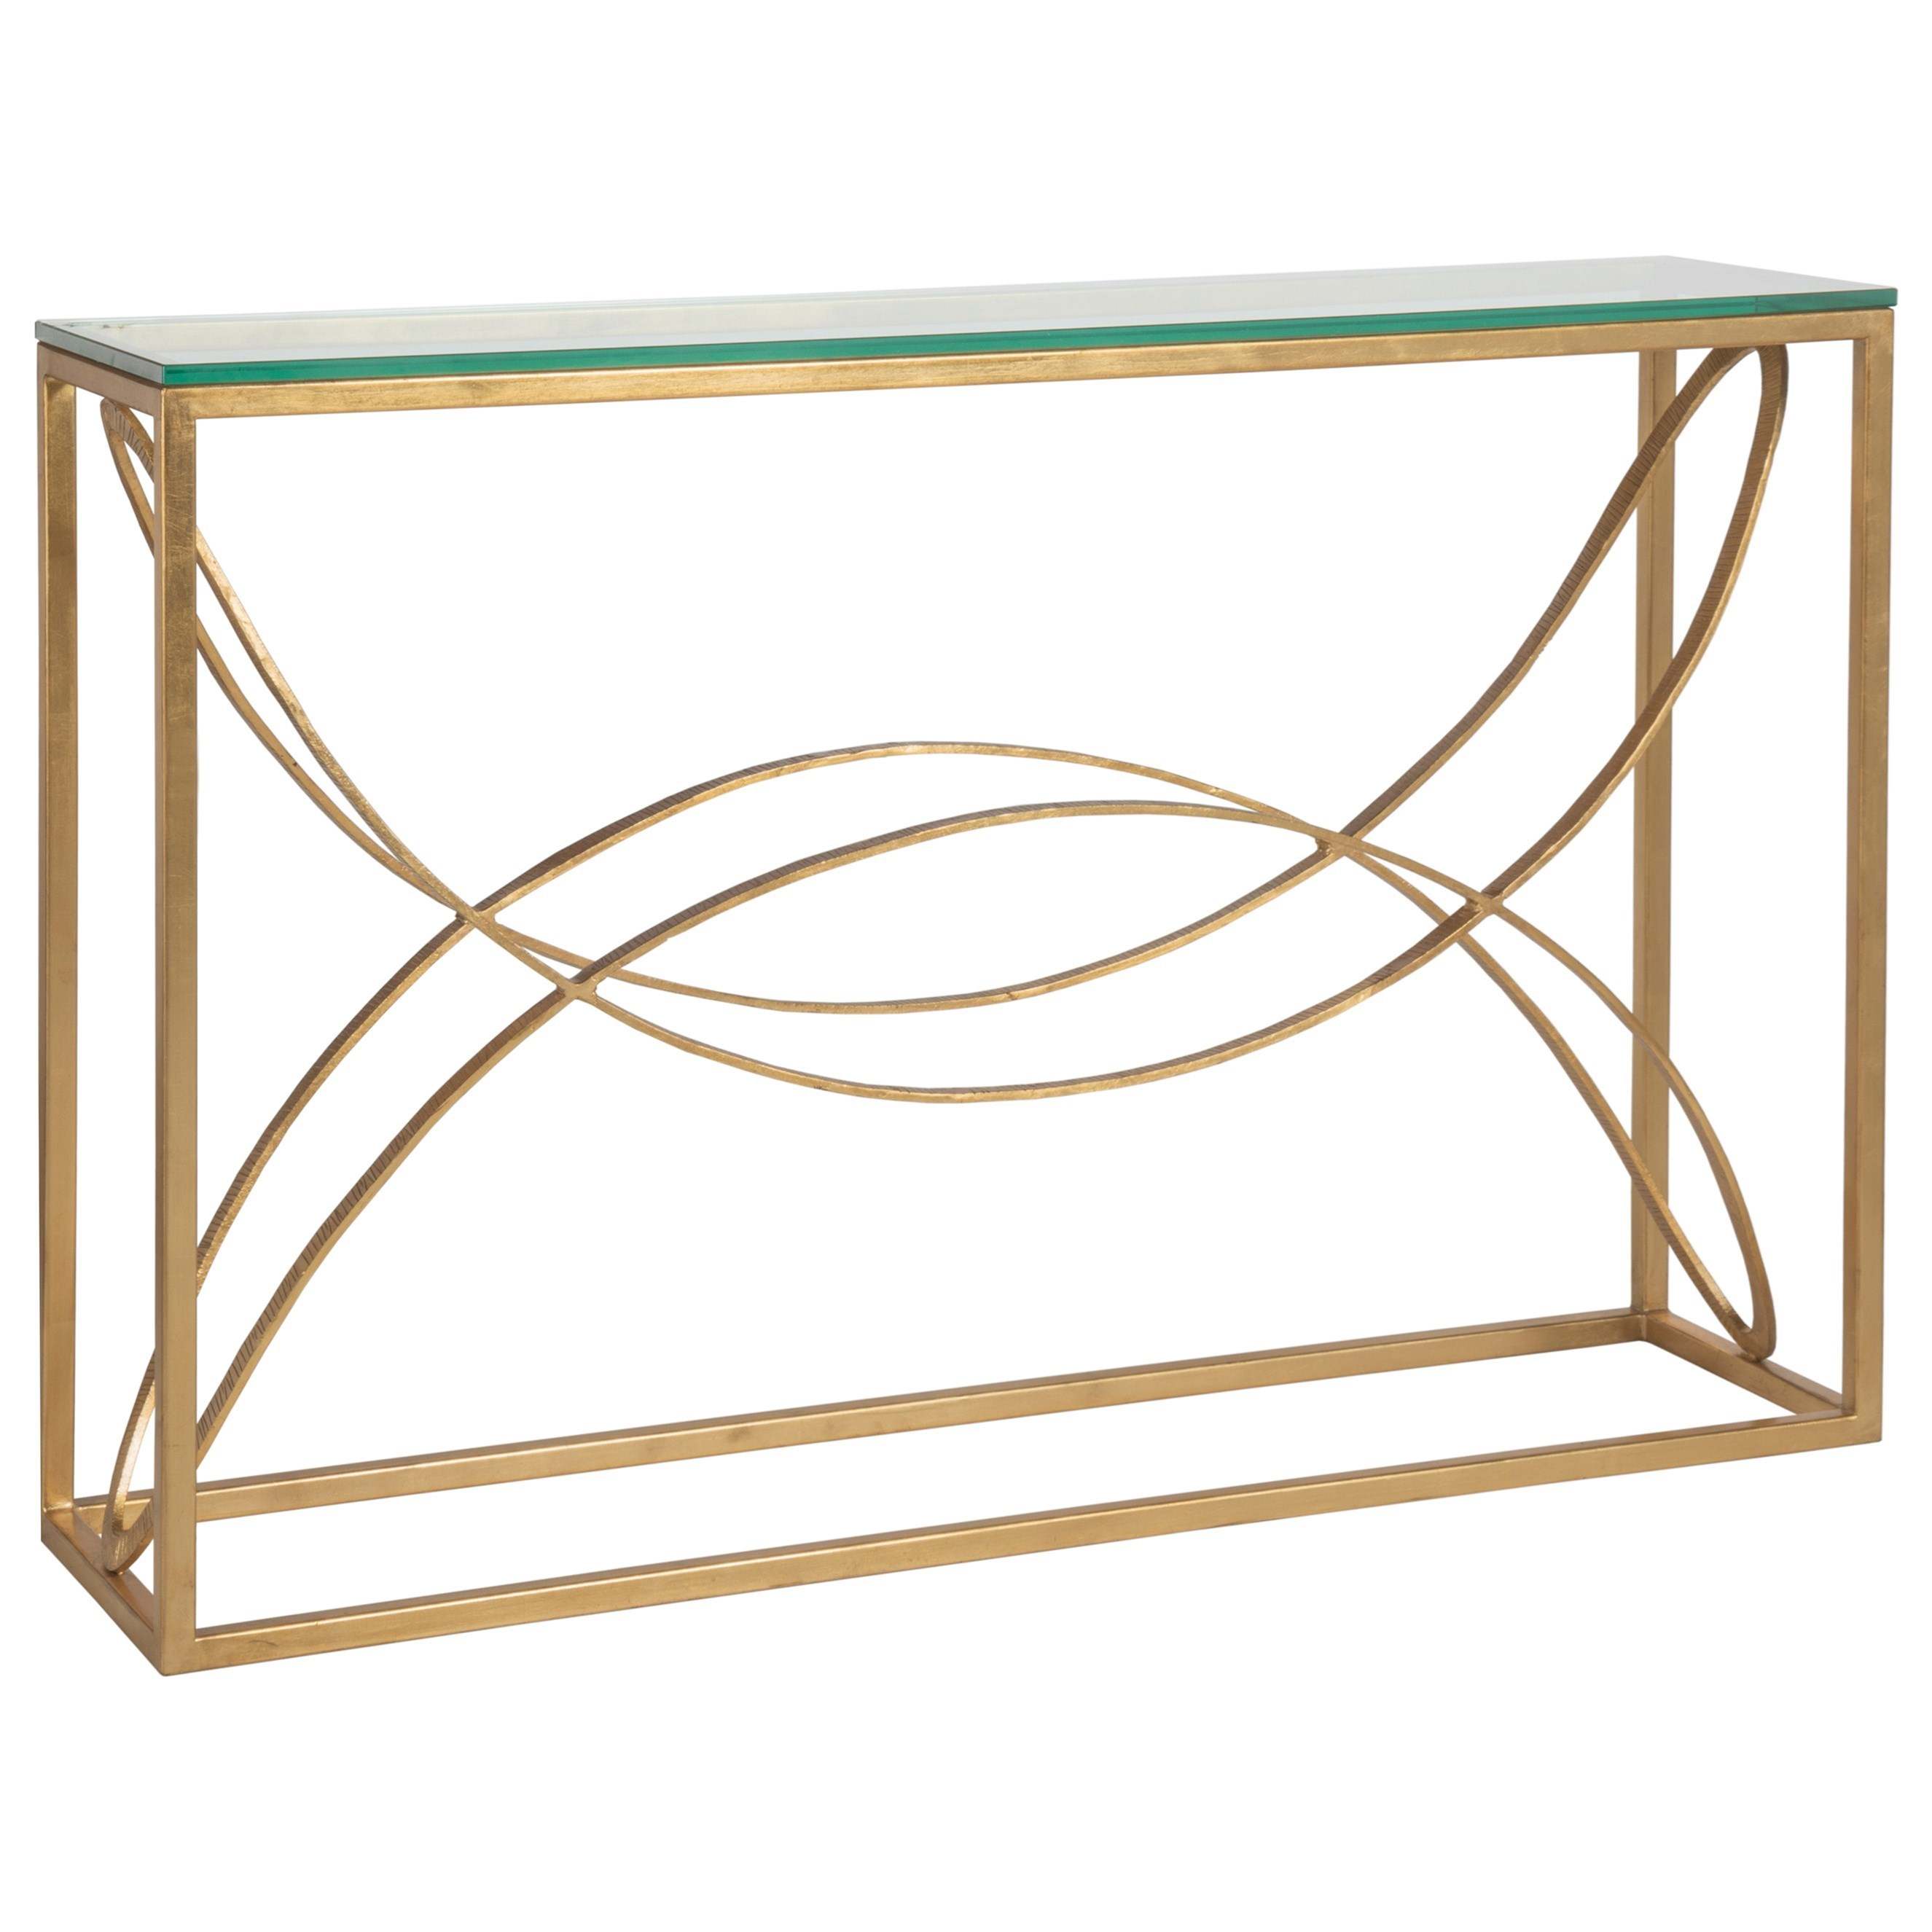 Metal Designs Ellipse Console by Artistica at Baer's Furniture